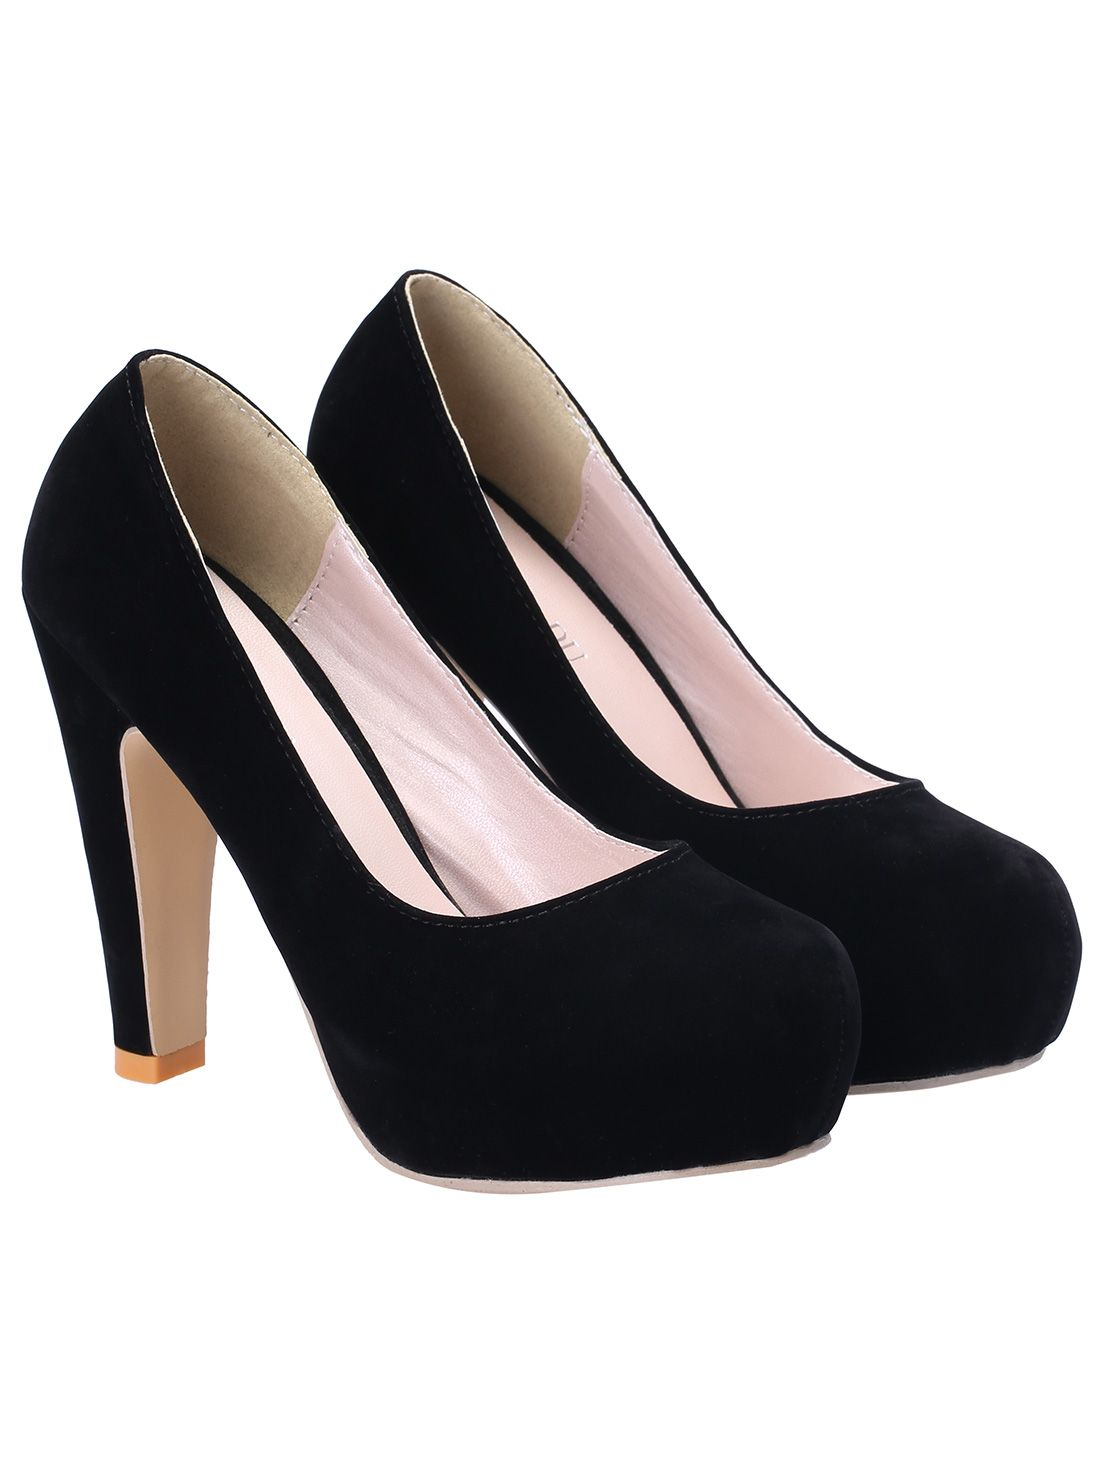 67c752318063 Shop Black High Heel Hidden Platform Pumps online. SheIn offers Black High  Heel Hidden Platform Pumps   more to fit your fashionable needs.